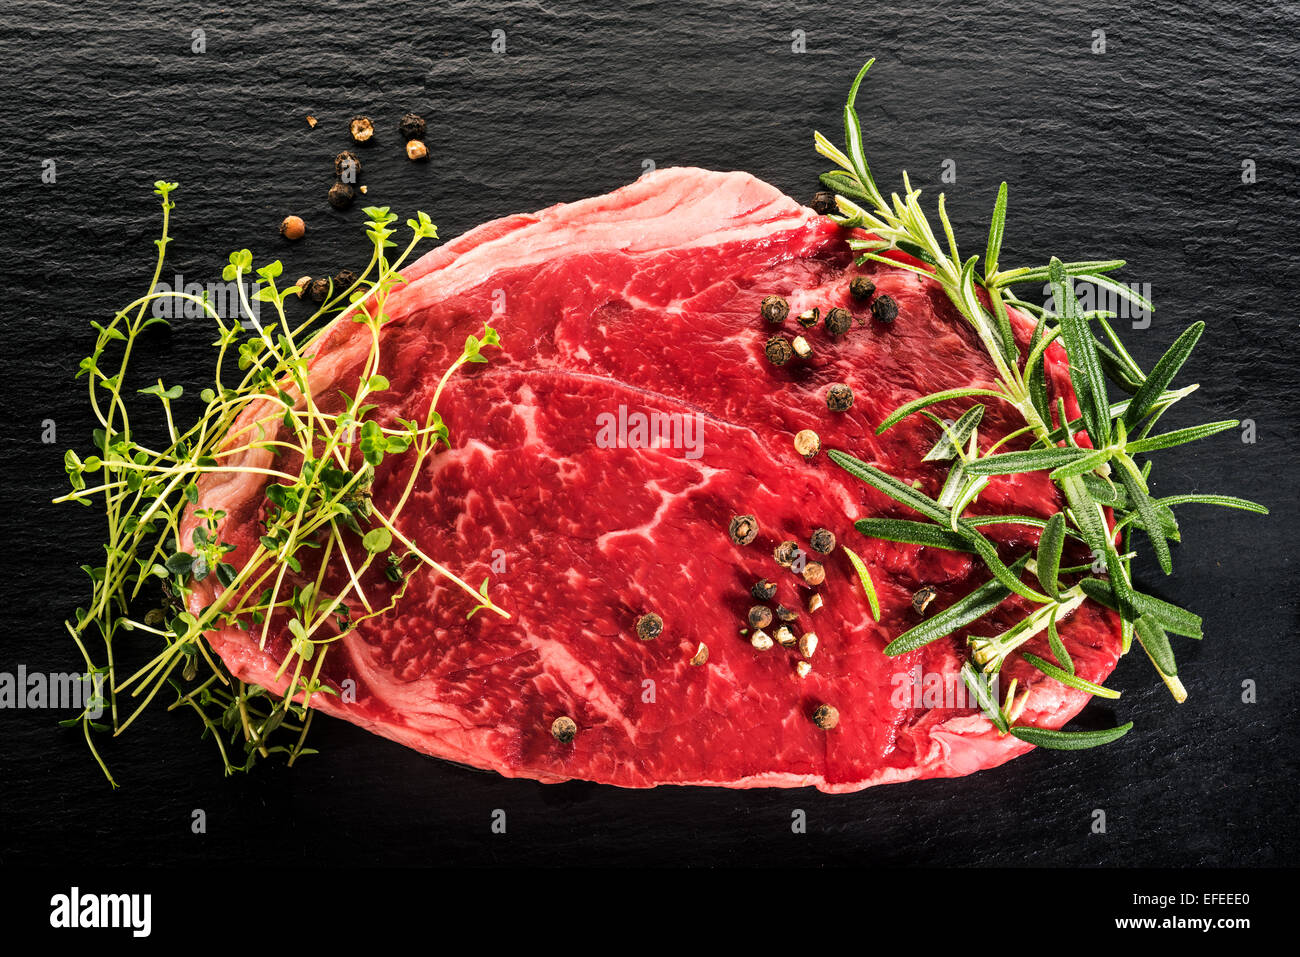 pure raw beef American Beef Beefsteak Steak Bow flesh food eating animals slice of frying grilling stewing fresh - Stock Image